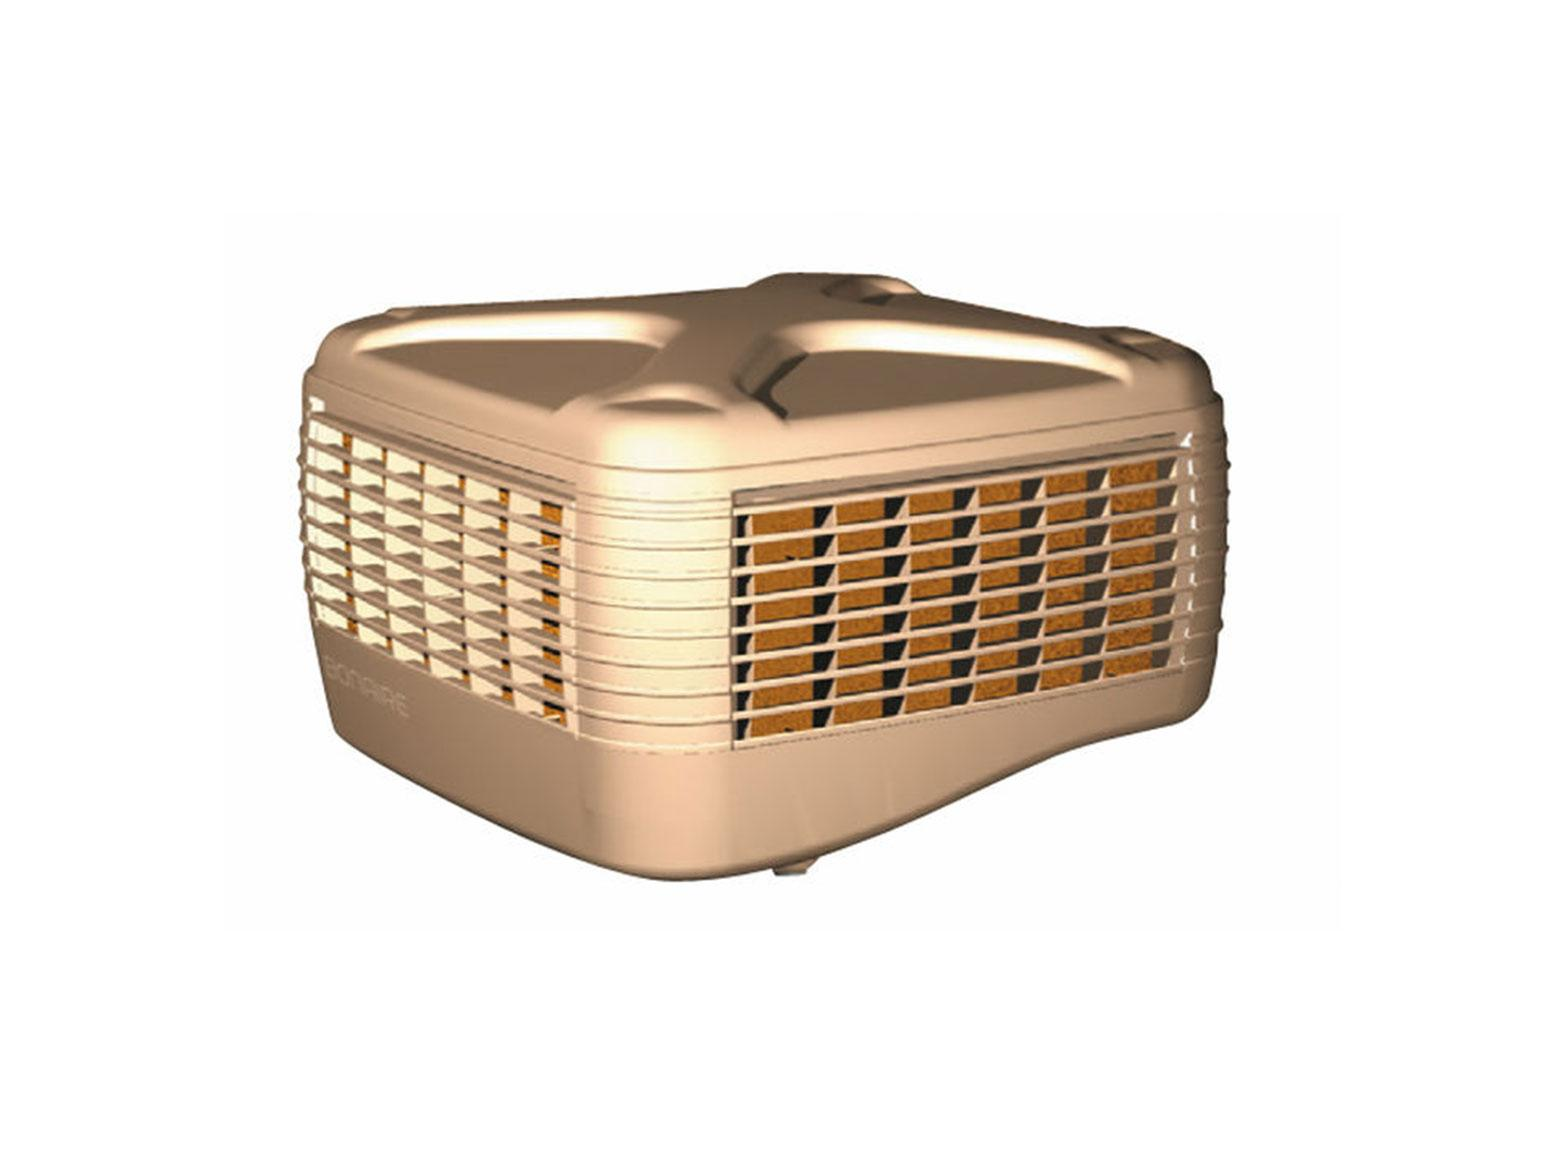 #A37A28 Bonaire Evaporative Cooler Residential Home Swamp Cooler Most Effective 8175 Air Conditioner Installers Johannesburg pictures with 1566x1174 px on helpvideos.info - Air Conditioners, Air Coolers and more